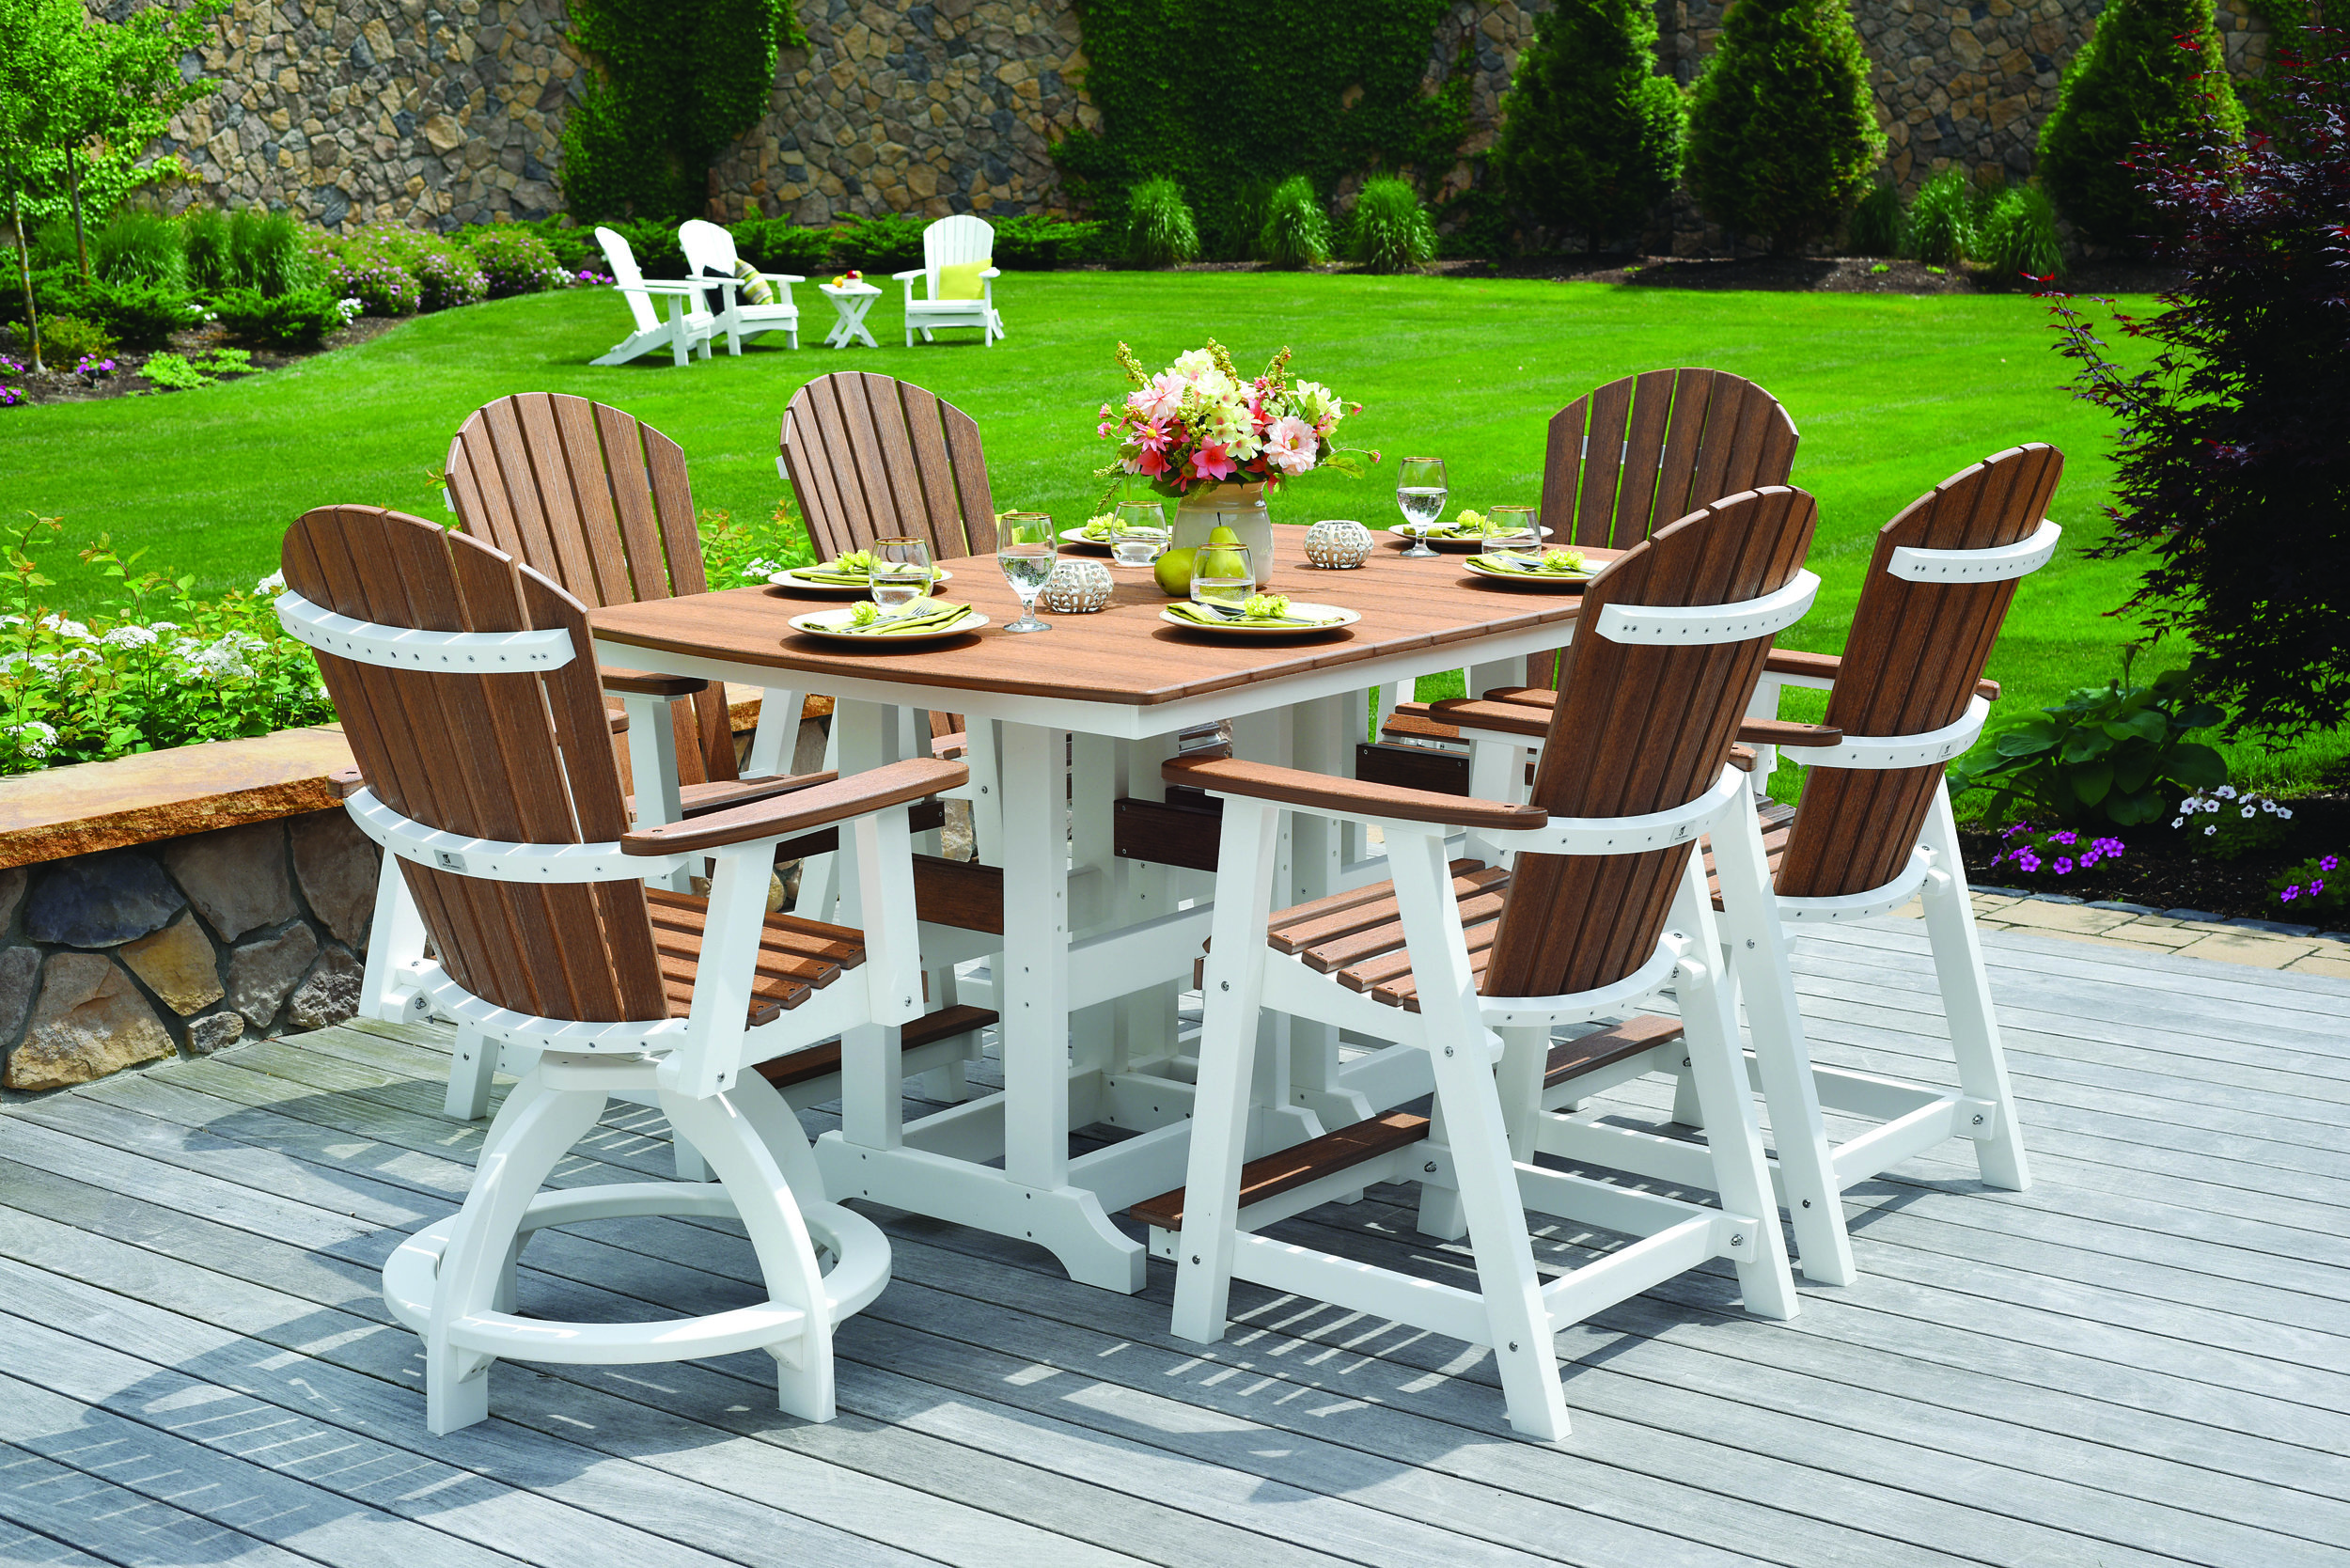 Garden Classic Collection - Classic All-Poly Dining Sets, Tables & Seating